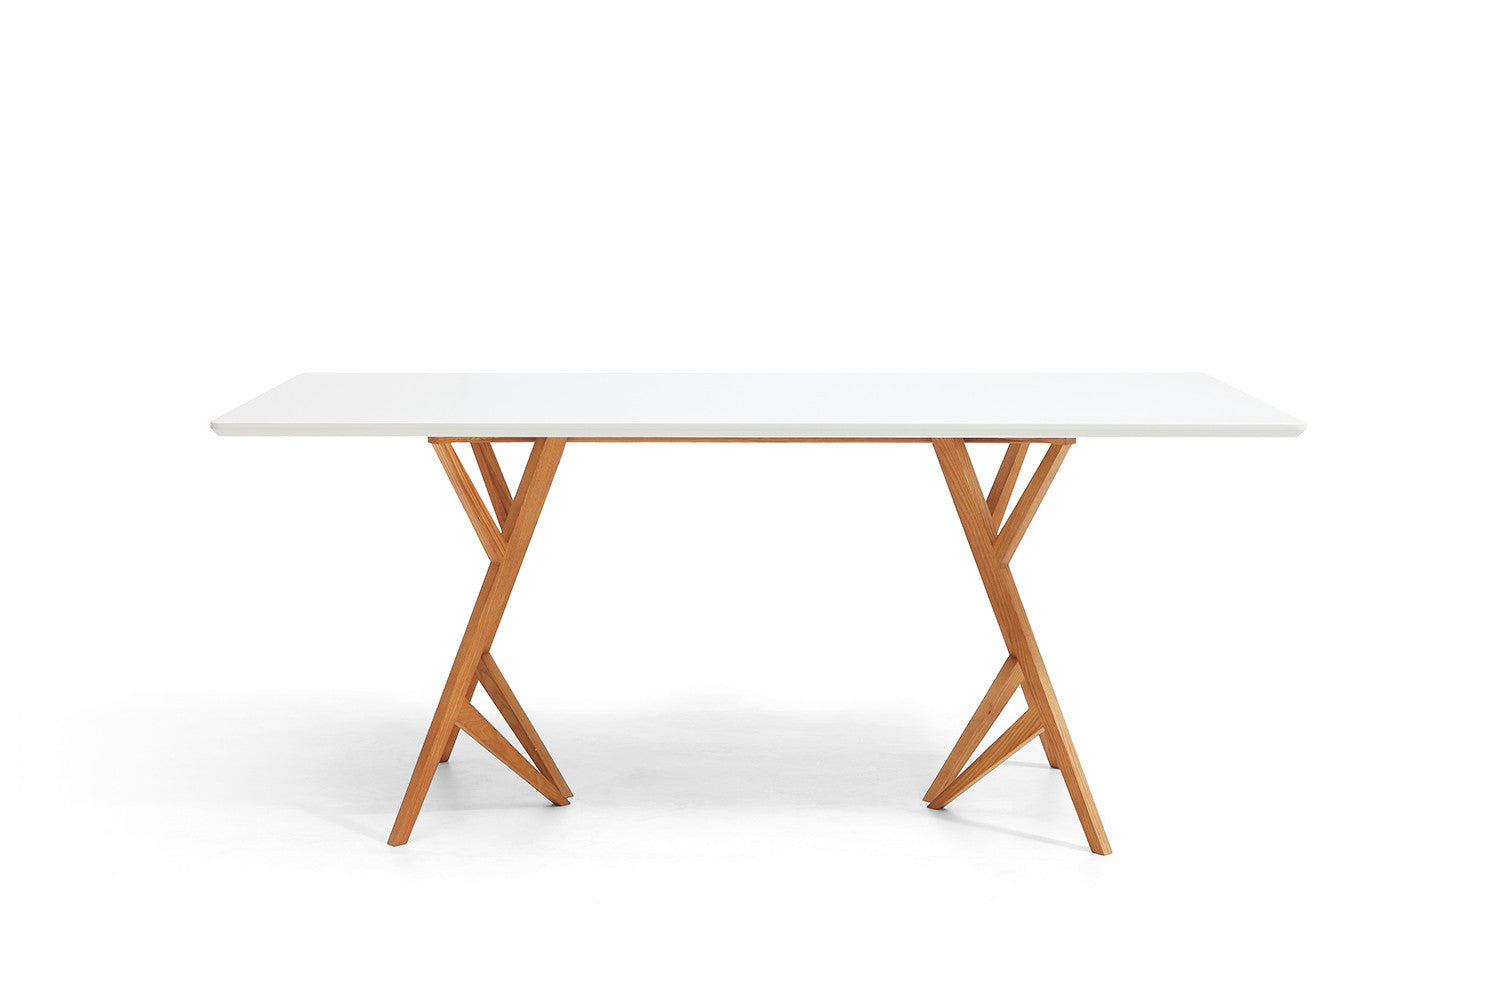 Table de salle manger design scandinave vispa dewarens for Table salle manger verre bois design